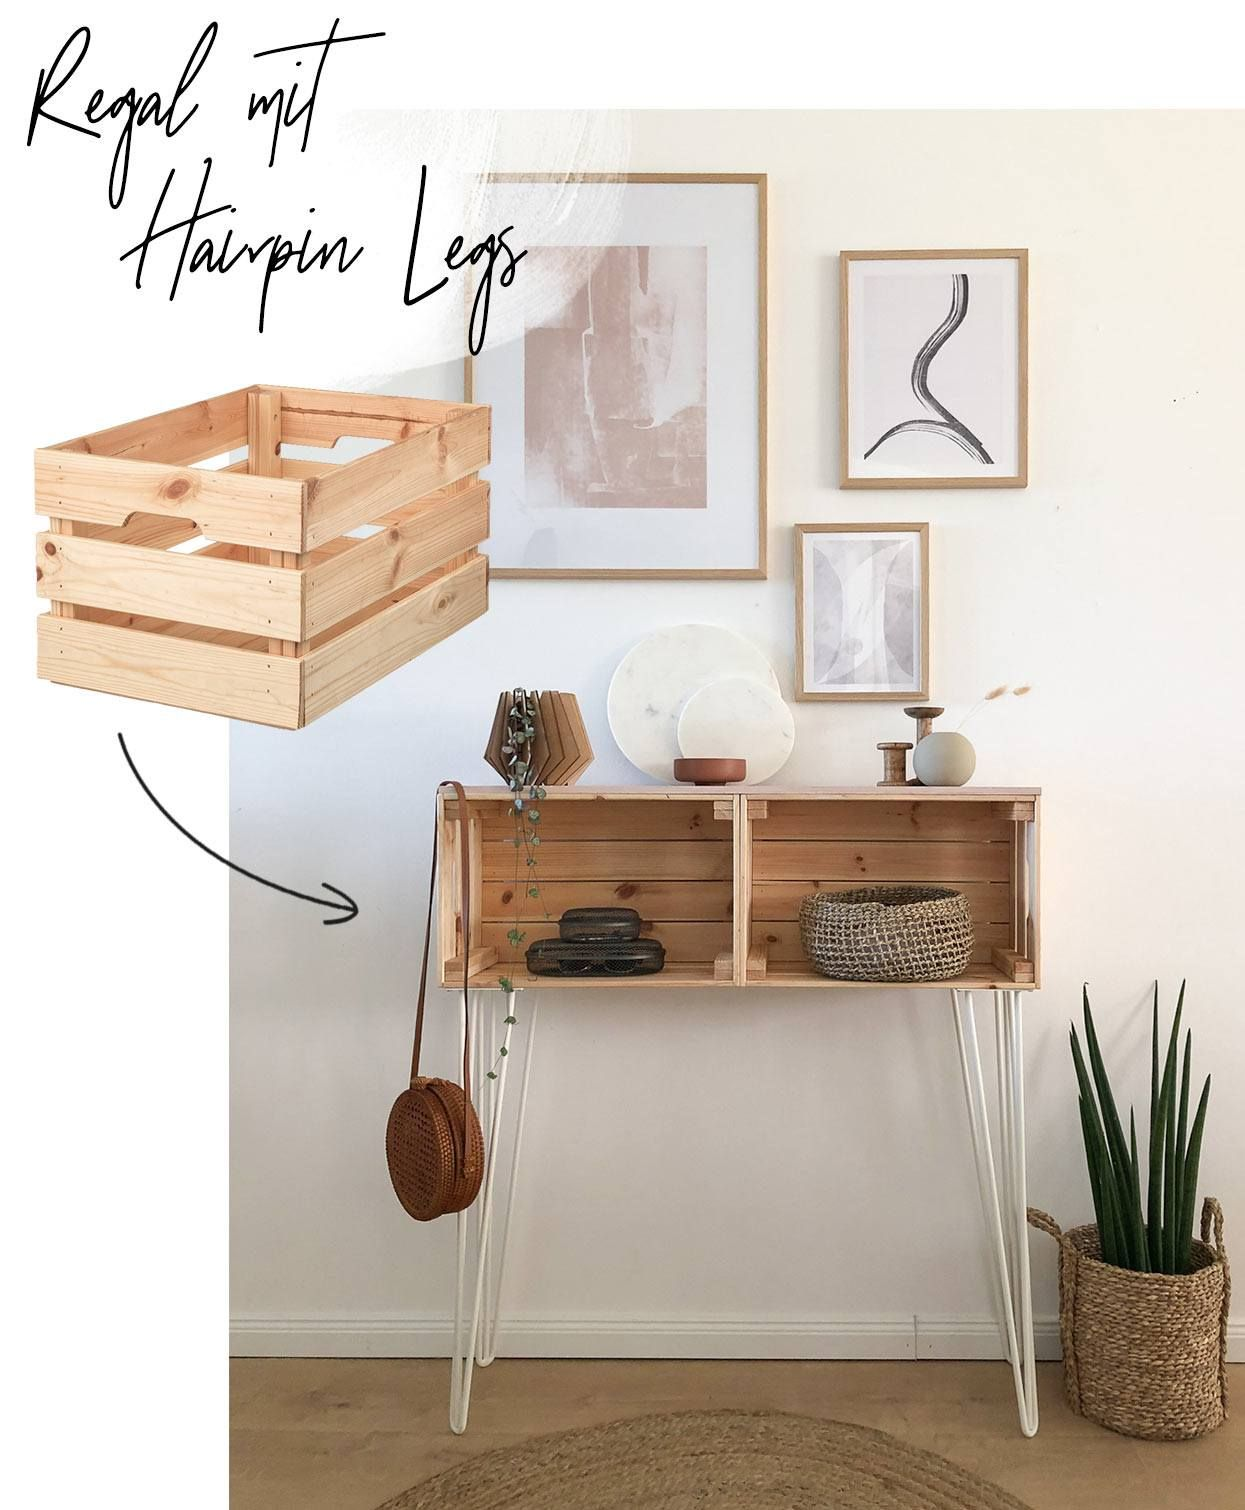 Photo of IKEA Hack – Regal mit Hairpin Legs selber bauen – WOHNKLAMOT